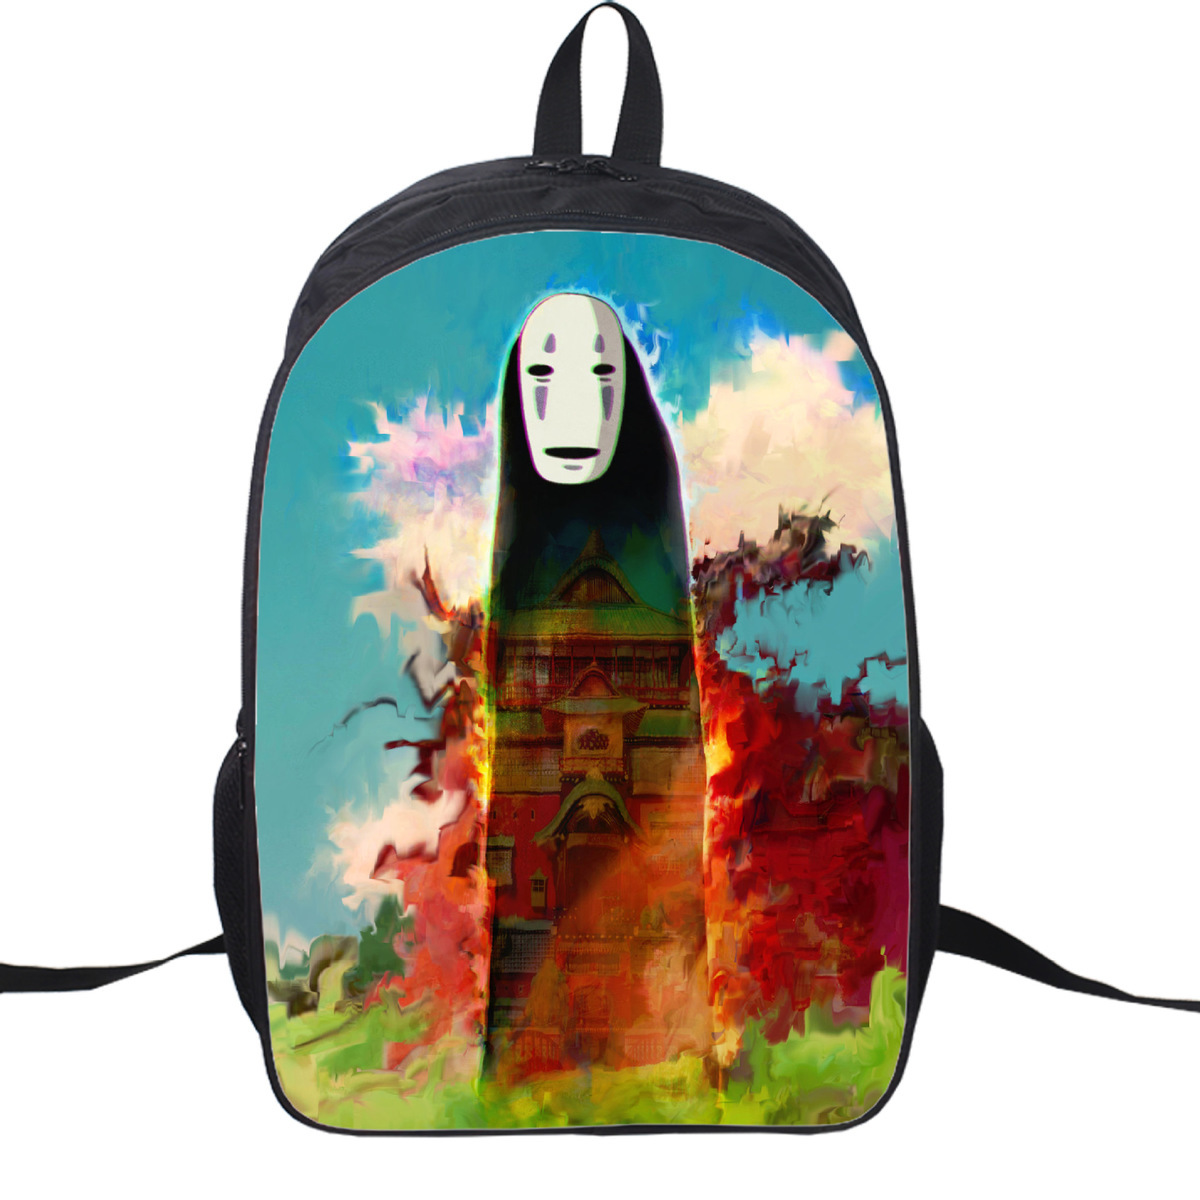 Japan Anime Miyazaki Totoro <font><b>Spirited</b></font> <font><b>Away</b></font> No Face Zipper Cute Canvas Cartoon Adult Double Belt <font><b>Backpack</b></font> School Bag 8 style image